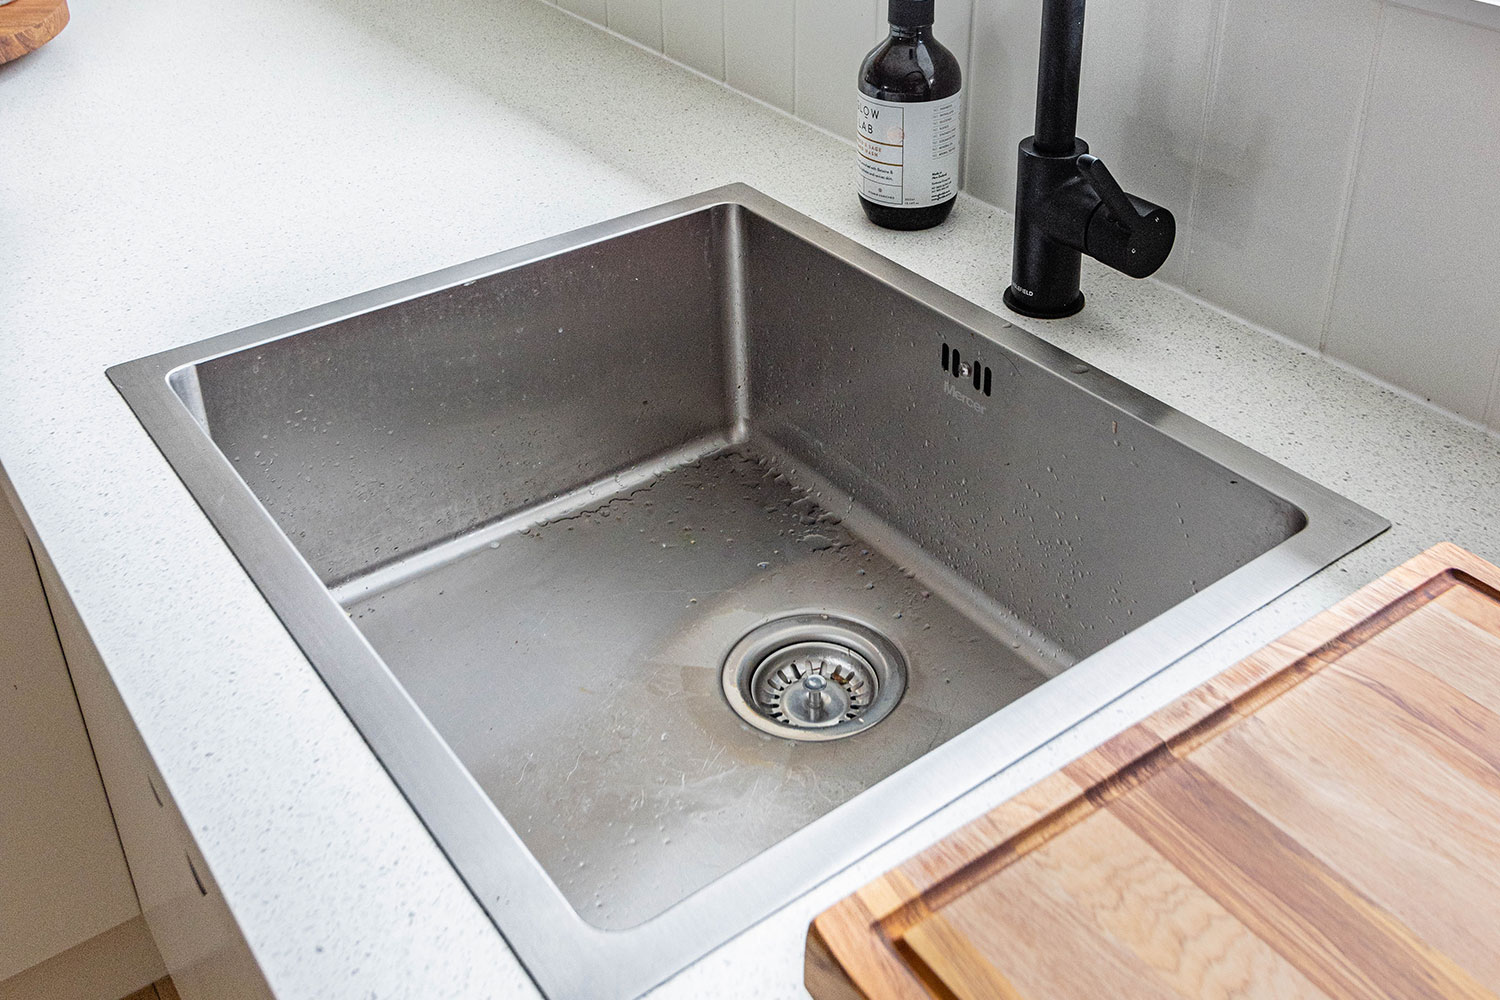 Why Does My Drain Keep Clogging?